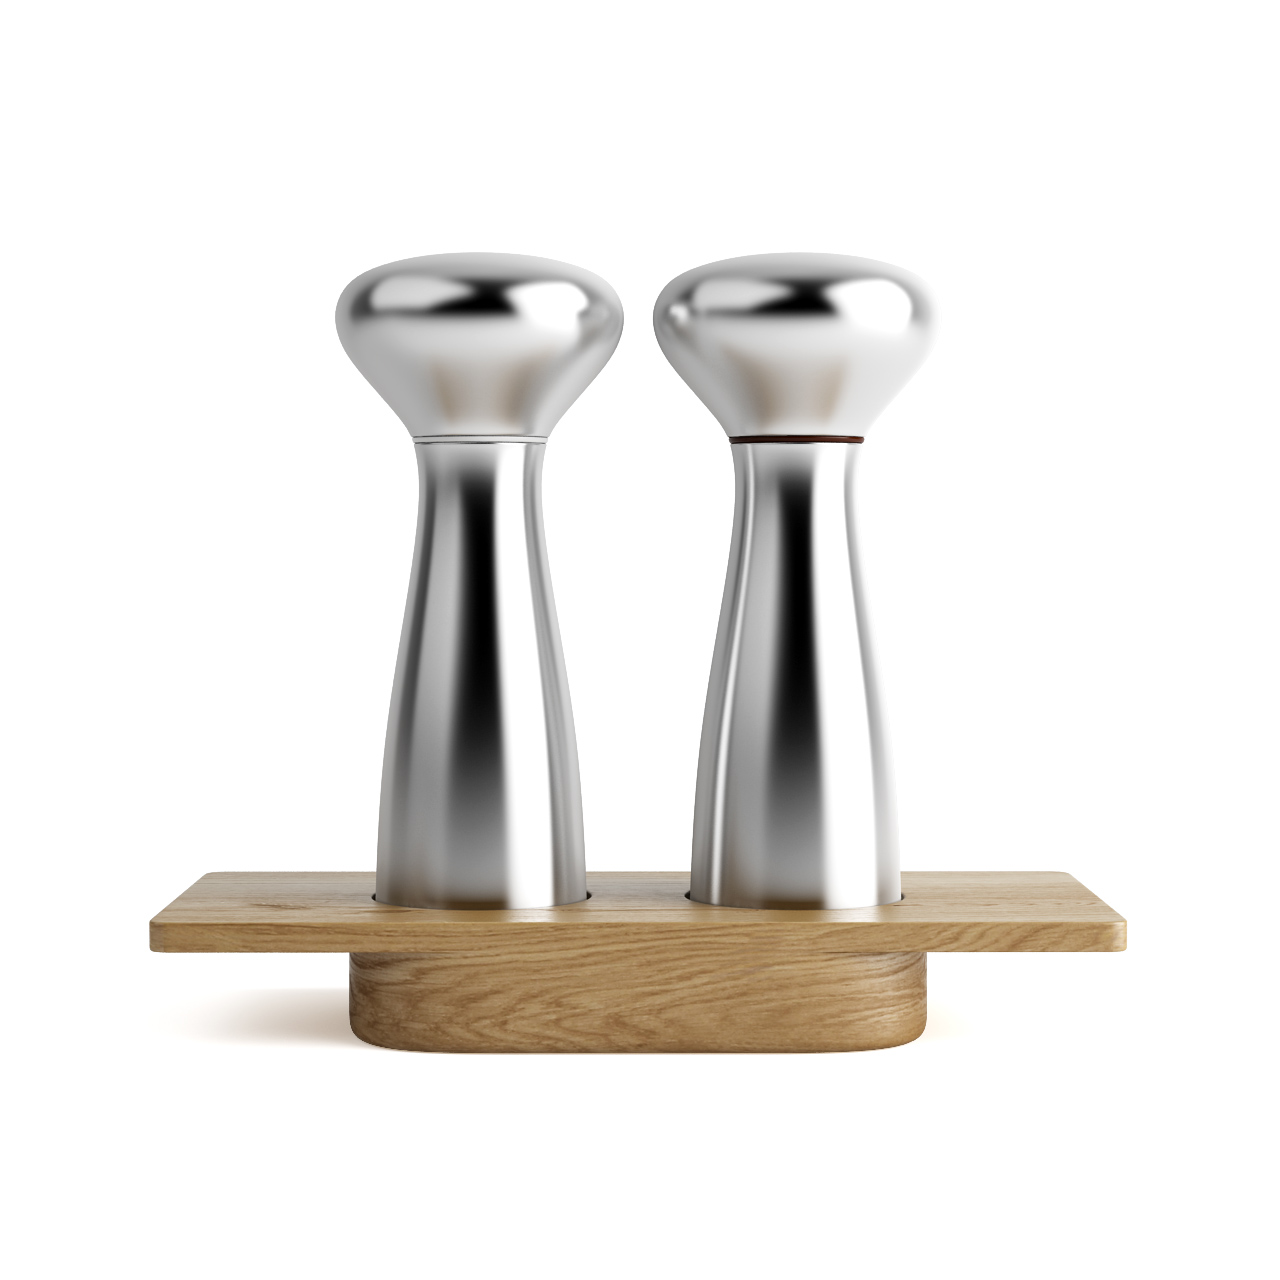 Pro Kitchen Faucet Alfredo Salt And Pepper Mills By Georg Jensen Dimensiva